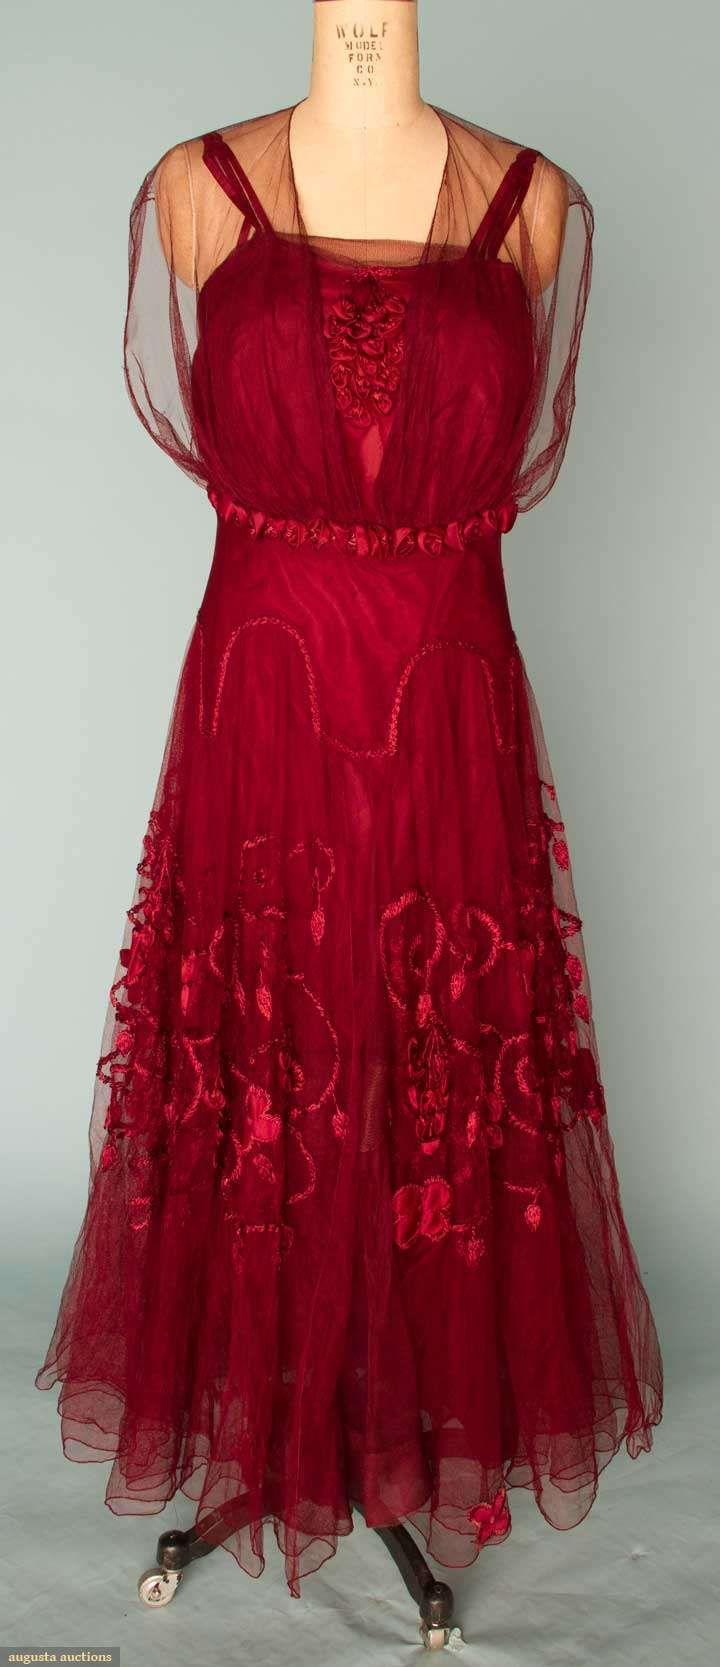 Embroidered Garnet Silk Evening Gown, C. 1915, Augusta Auctions, November 14, 2012 NEW YORK CITY, Lot 173